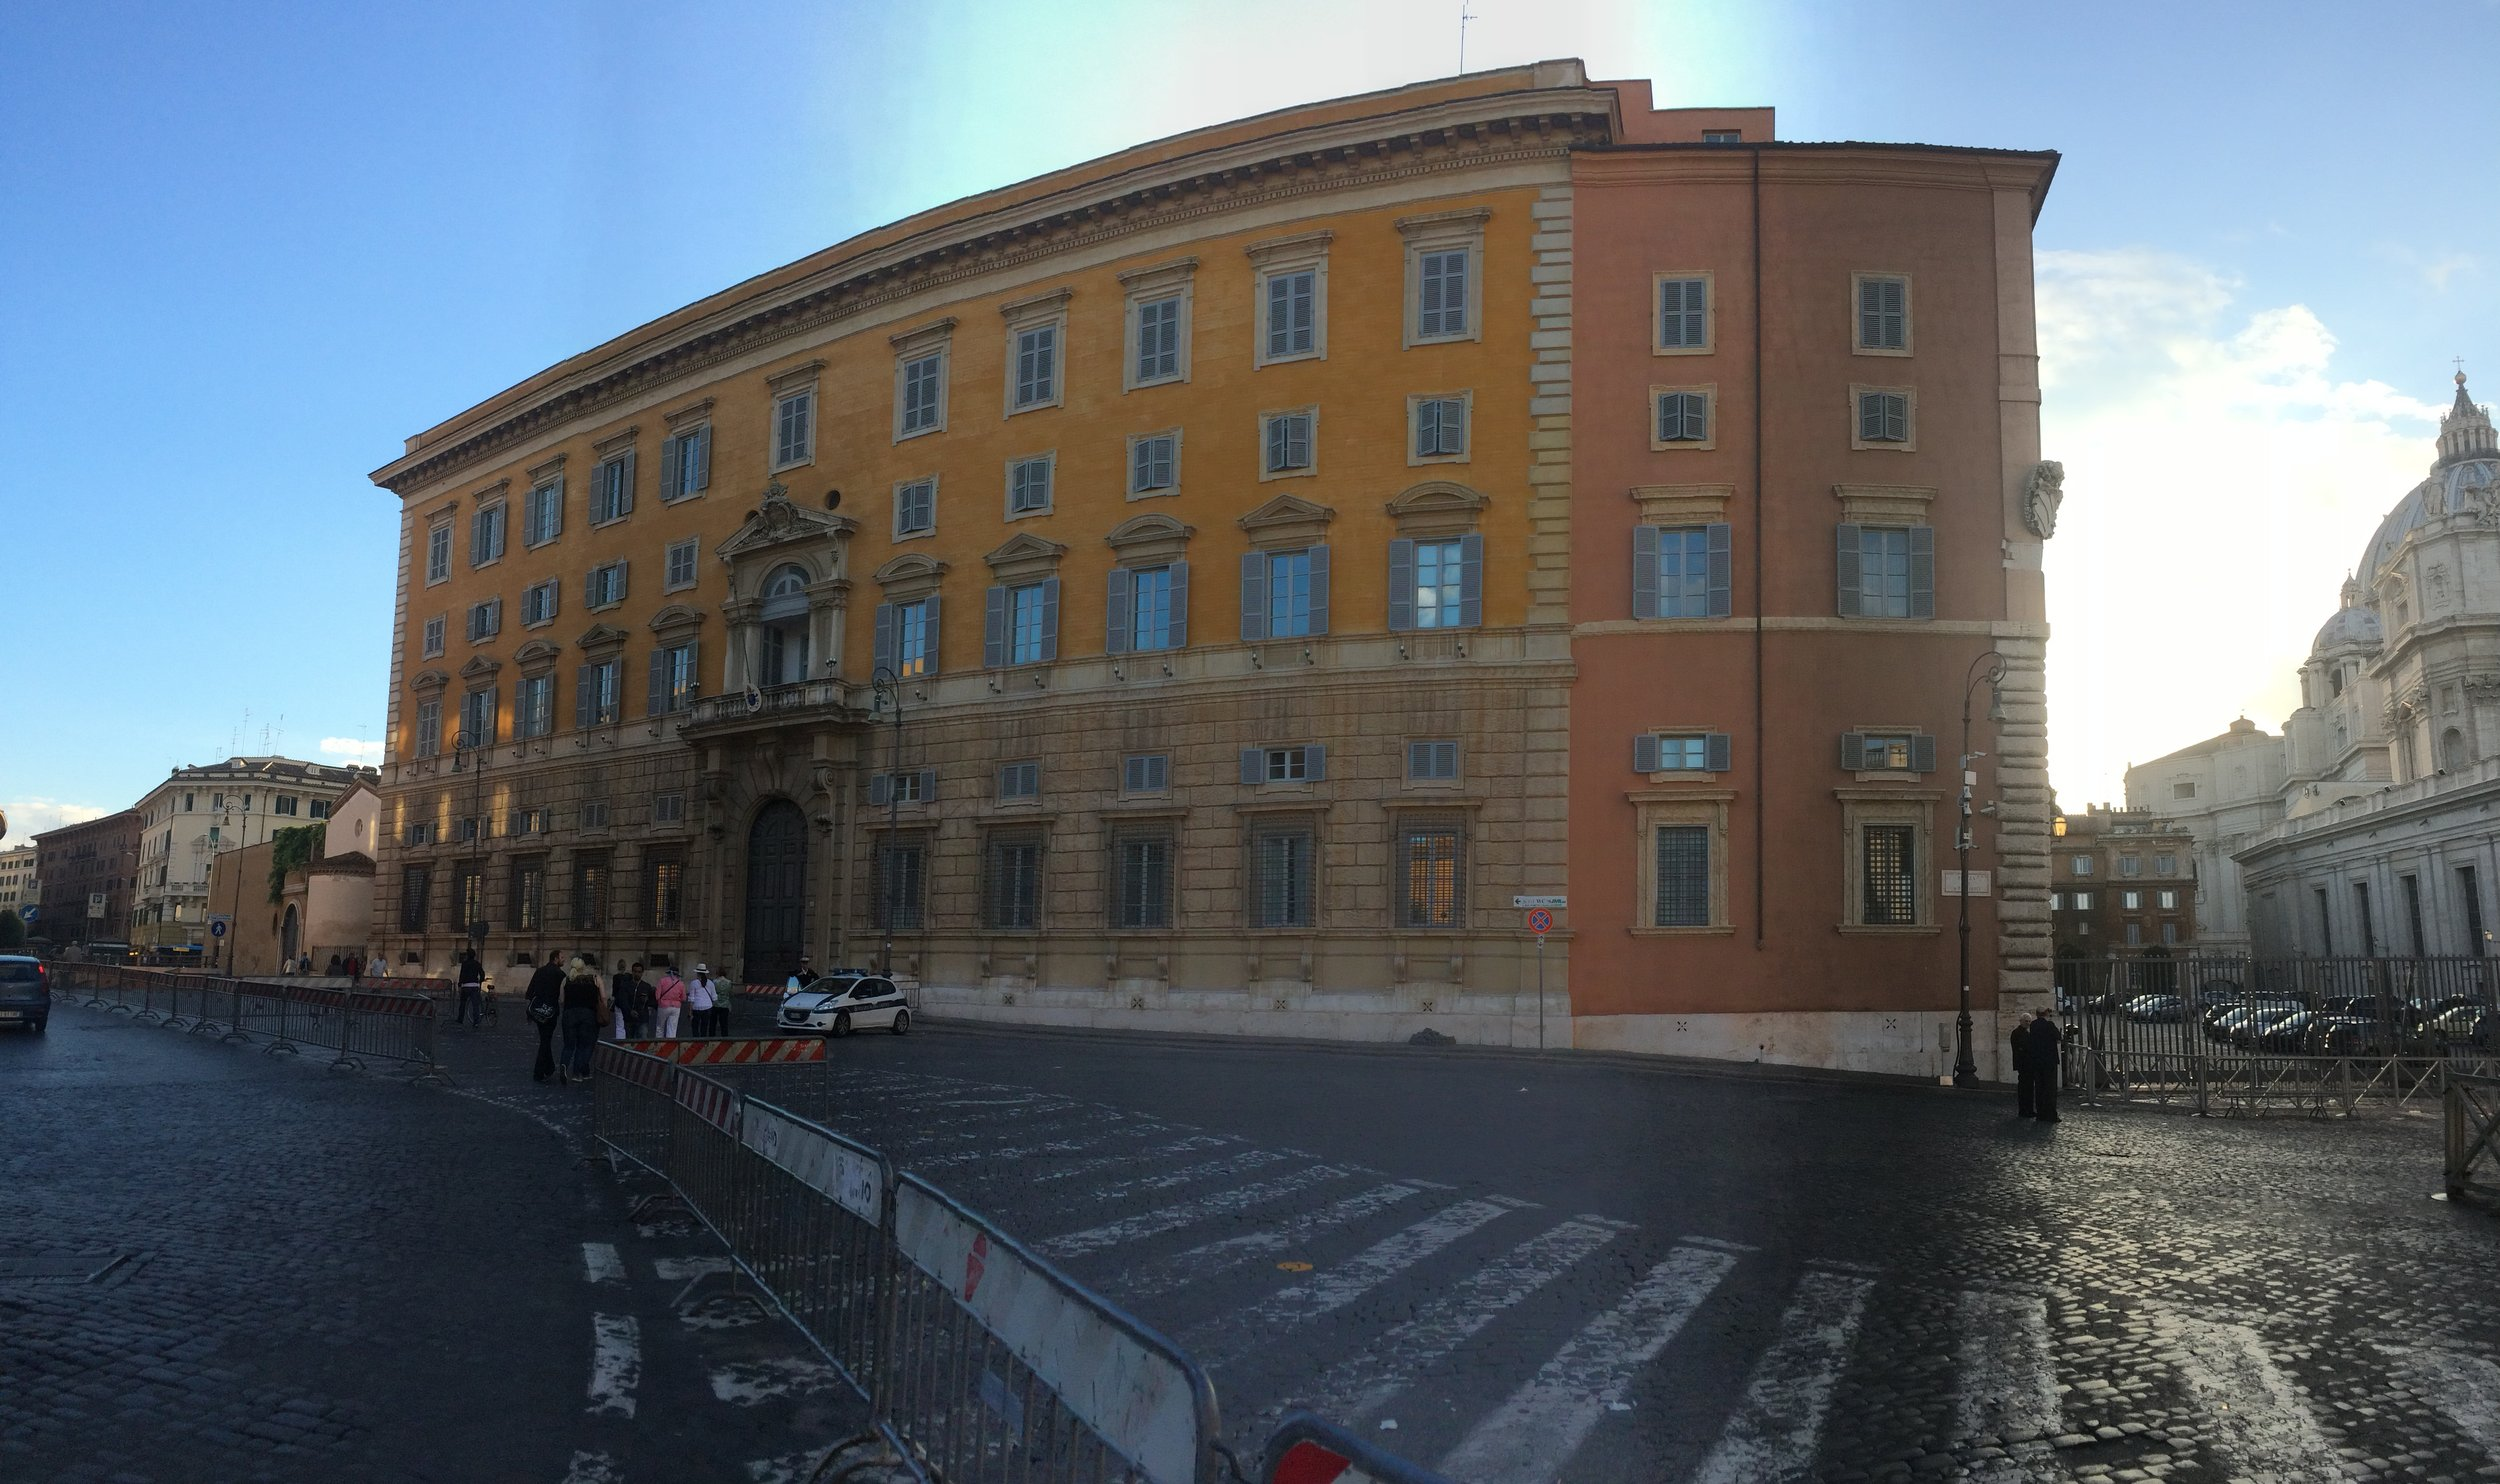 Just outside St. Peter's square. I just liked this building.